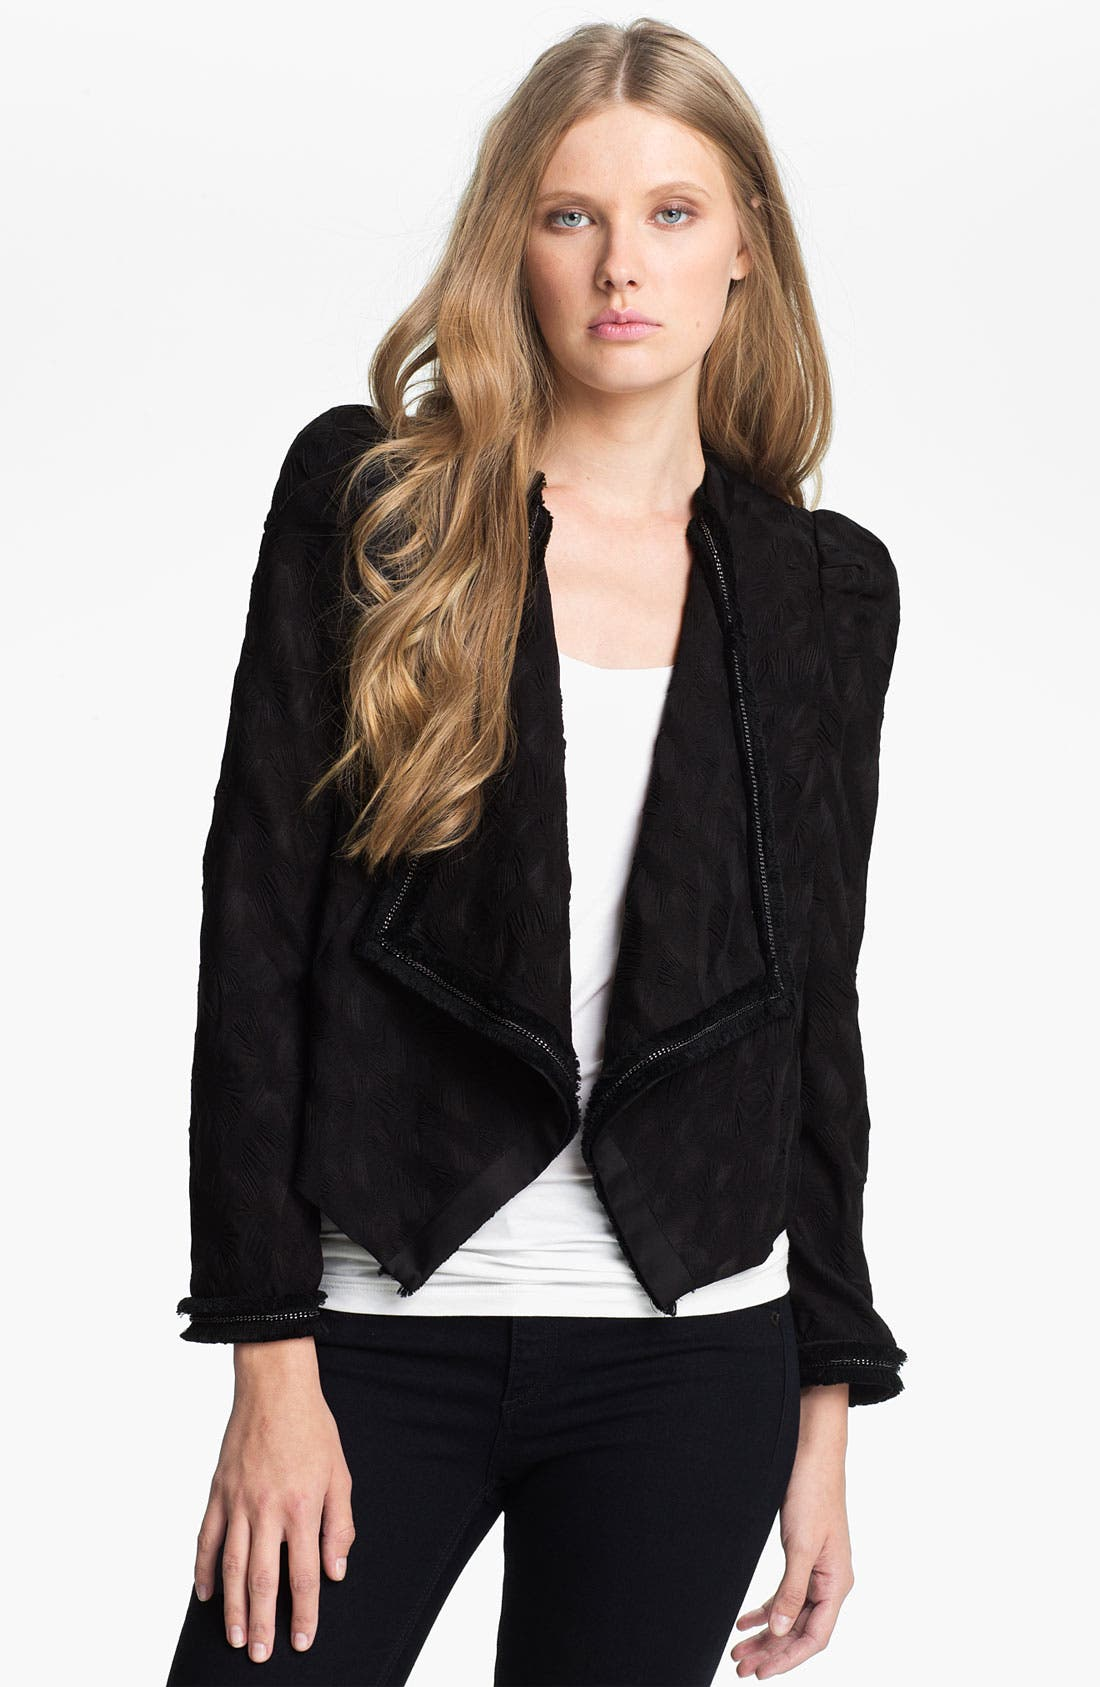 Alternate Image 1 Selected - Mcginn 'Harmony' Chain Trim Jacket (Nordstrom Exclusive)